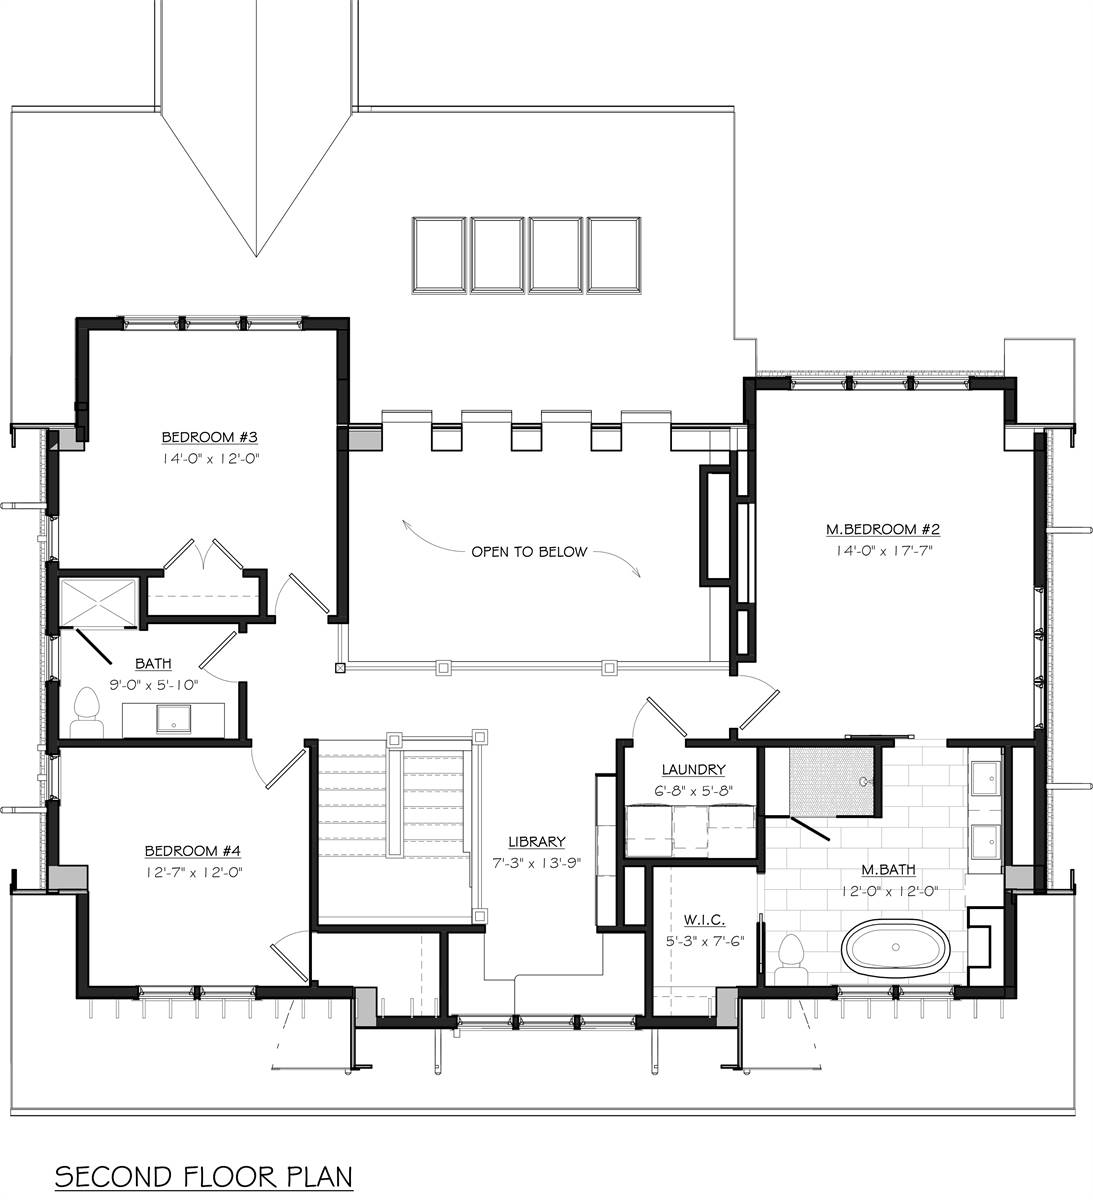 House Plan 7055 from Direct from the Designers